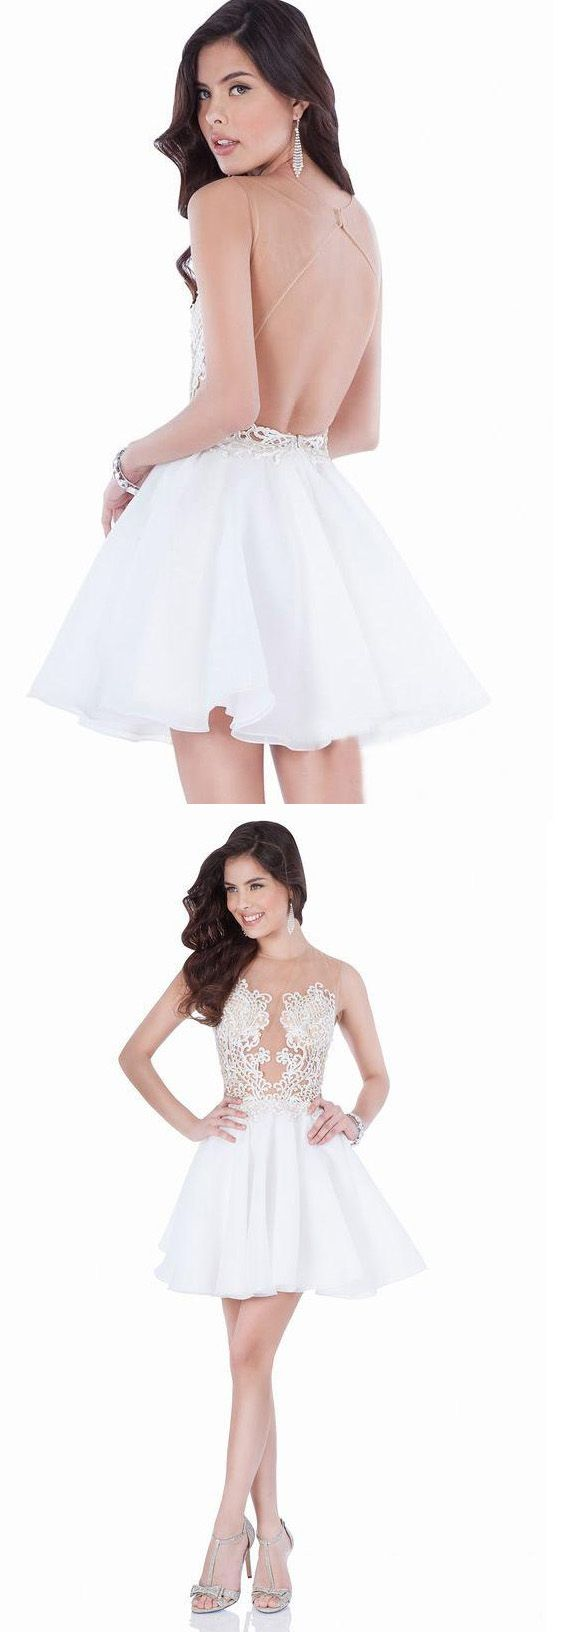 Outlet alineprincess homecoming prom dresses short white dresses